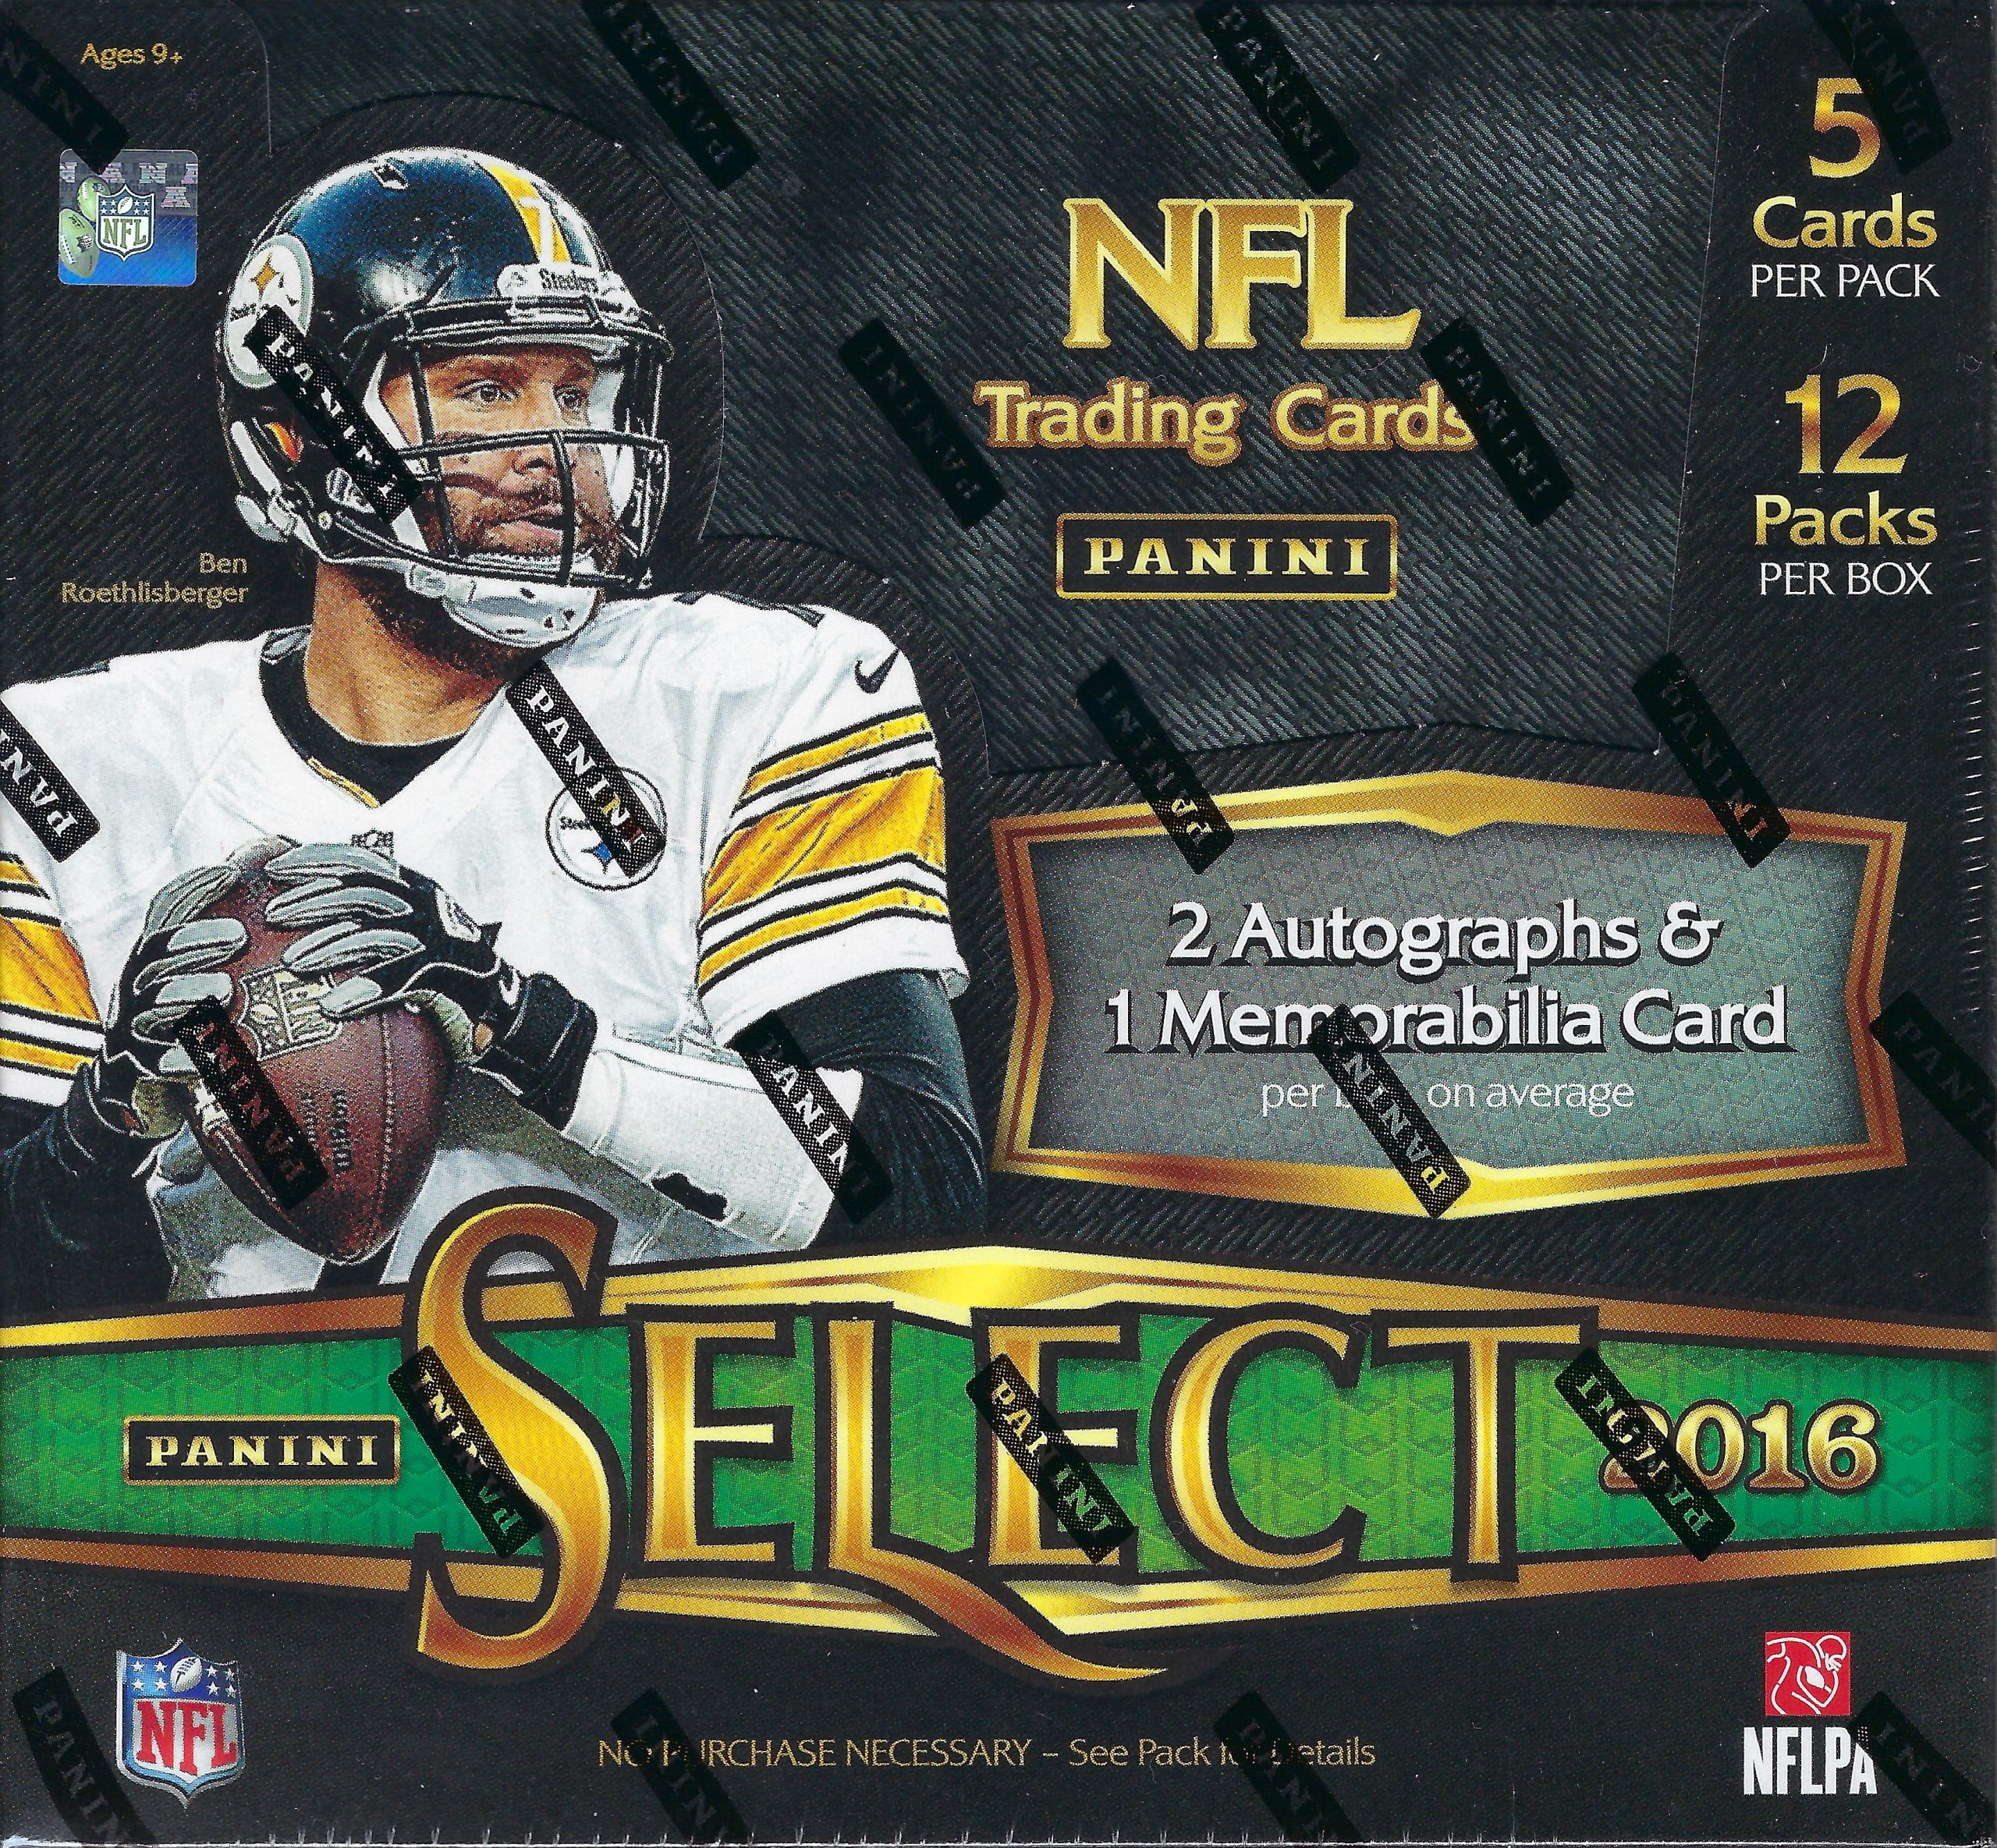 2016 Panini Select Football Hobby Single Box Random Teams #3